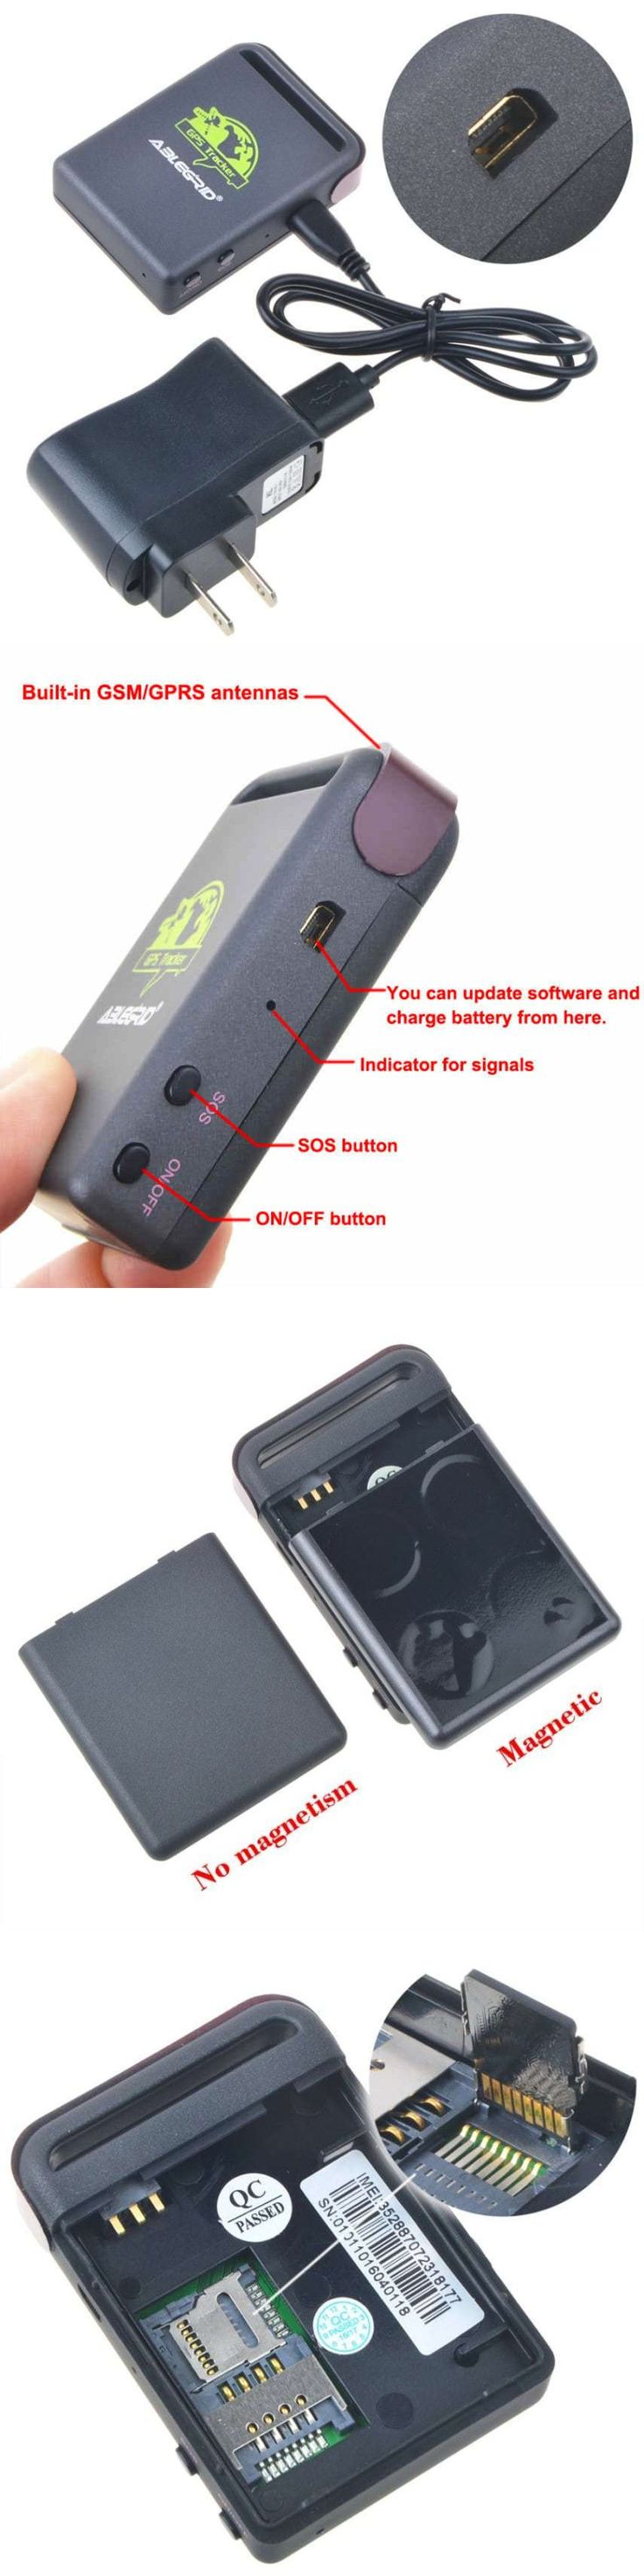 Tracking Devices: Gps Tracker Gsm Hidden Device For Tracking Personal Locator Car Vehicle Boats BUY IT NOW ONLY: $31.15